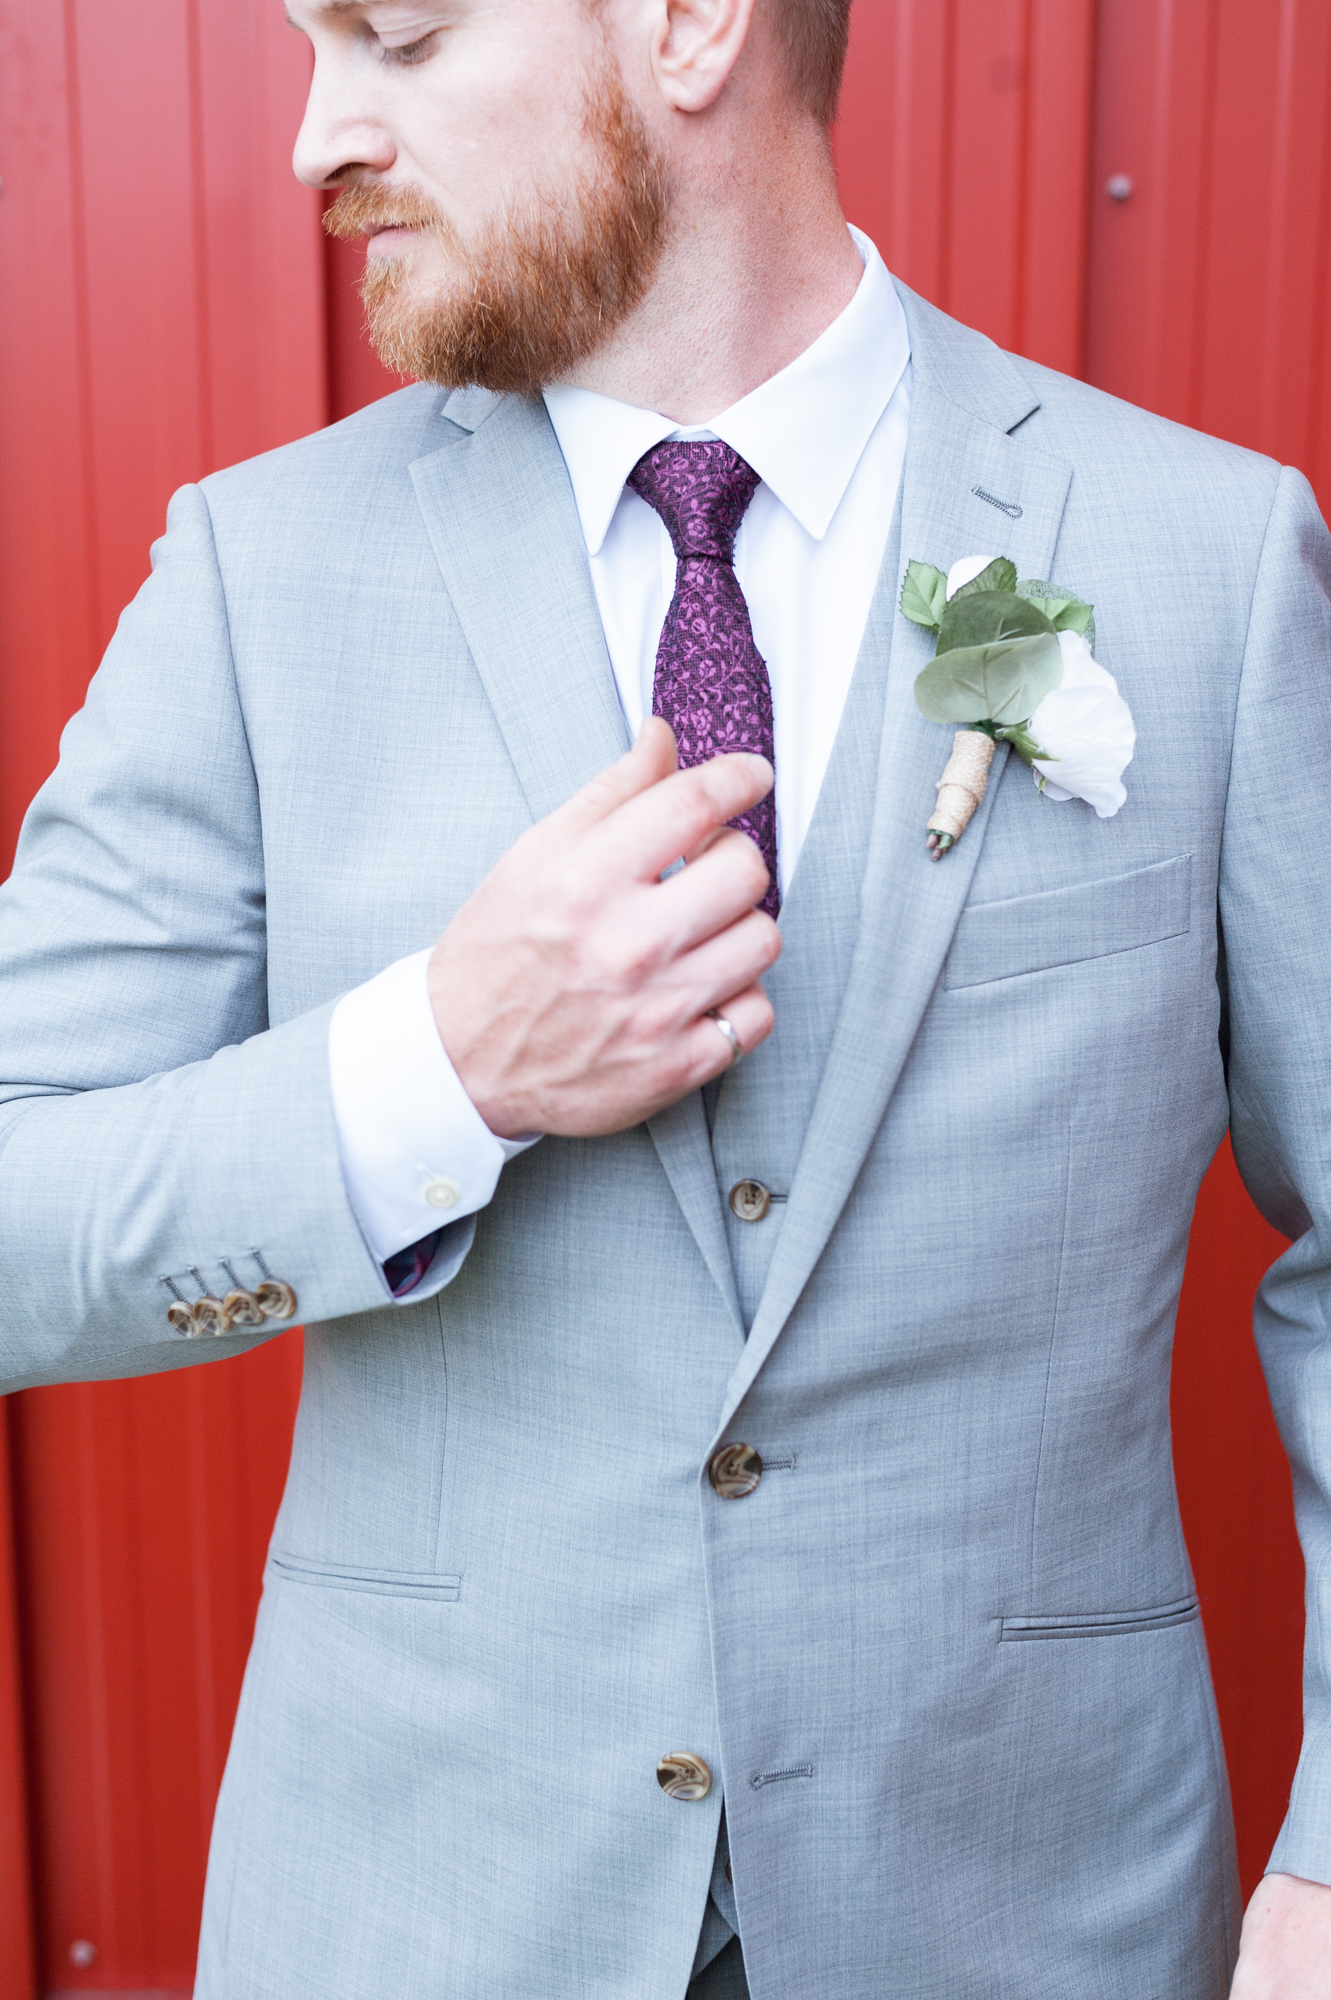 Experimental Farm Ottawa Wedding - Ornamental Gardens - Groom